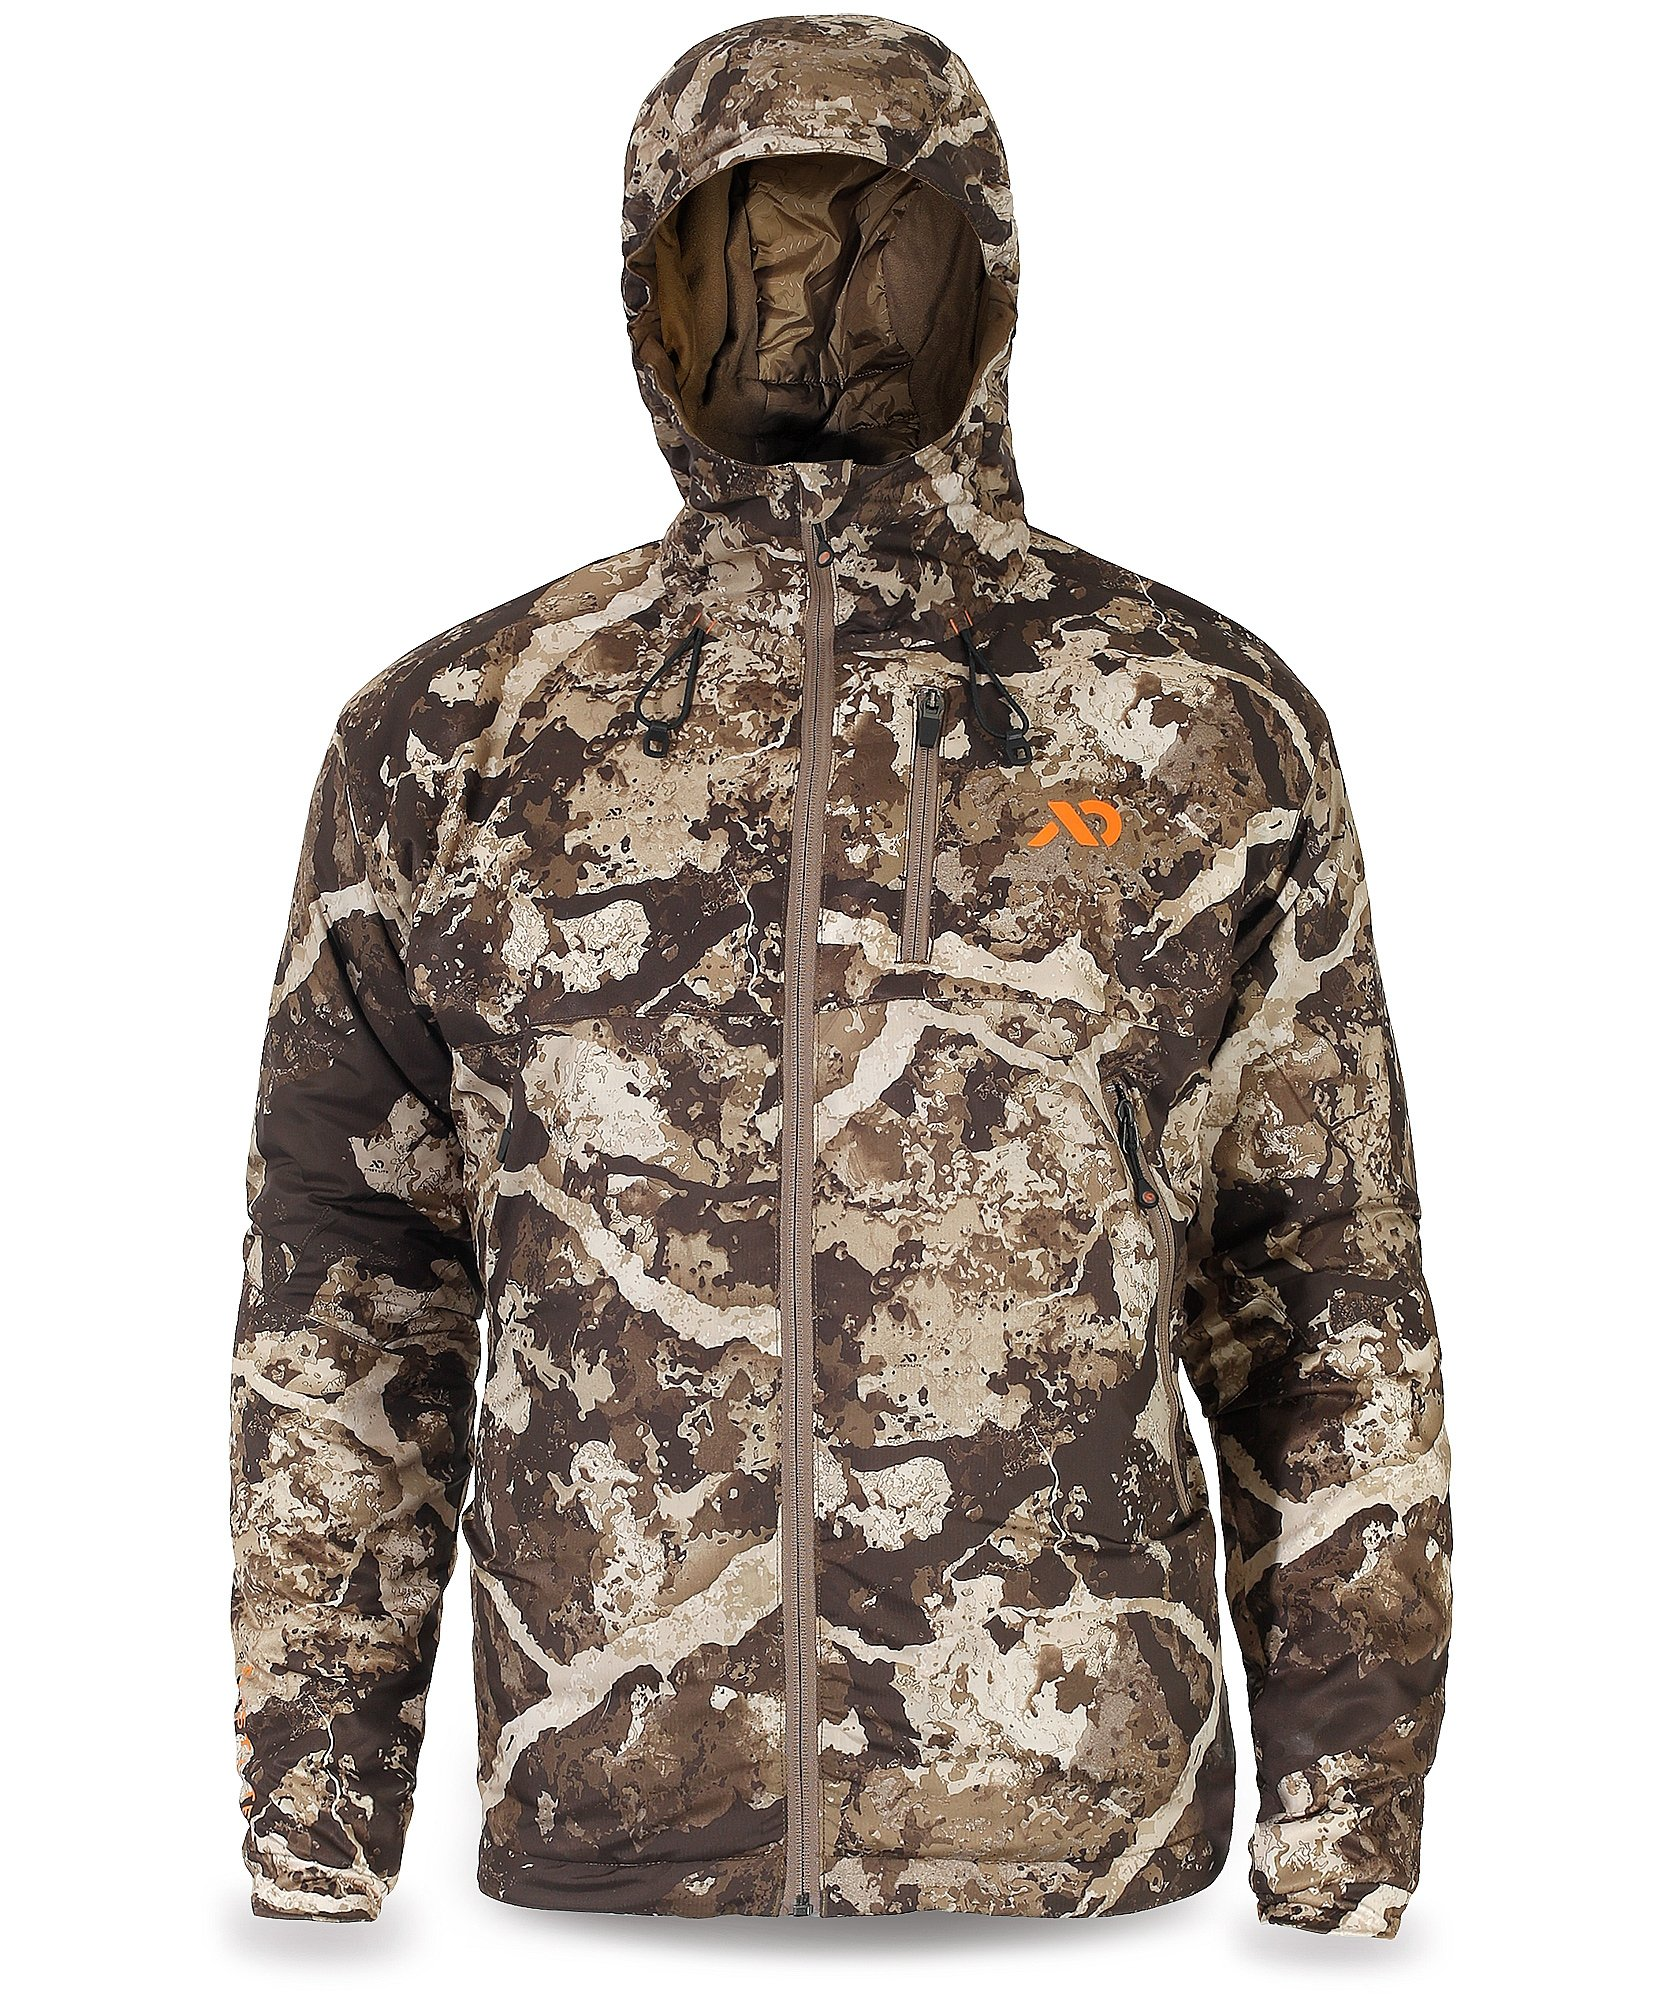 best clothes to go hunting in